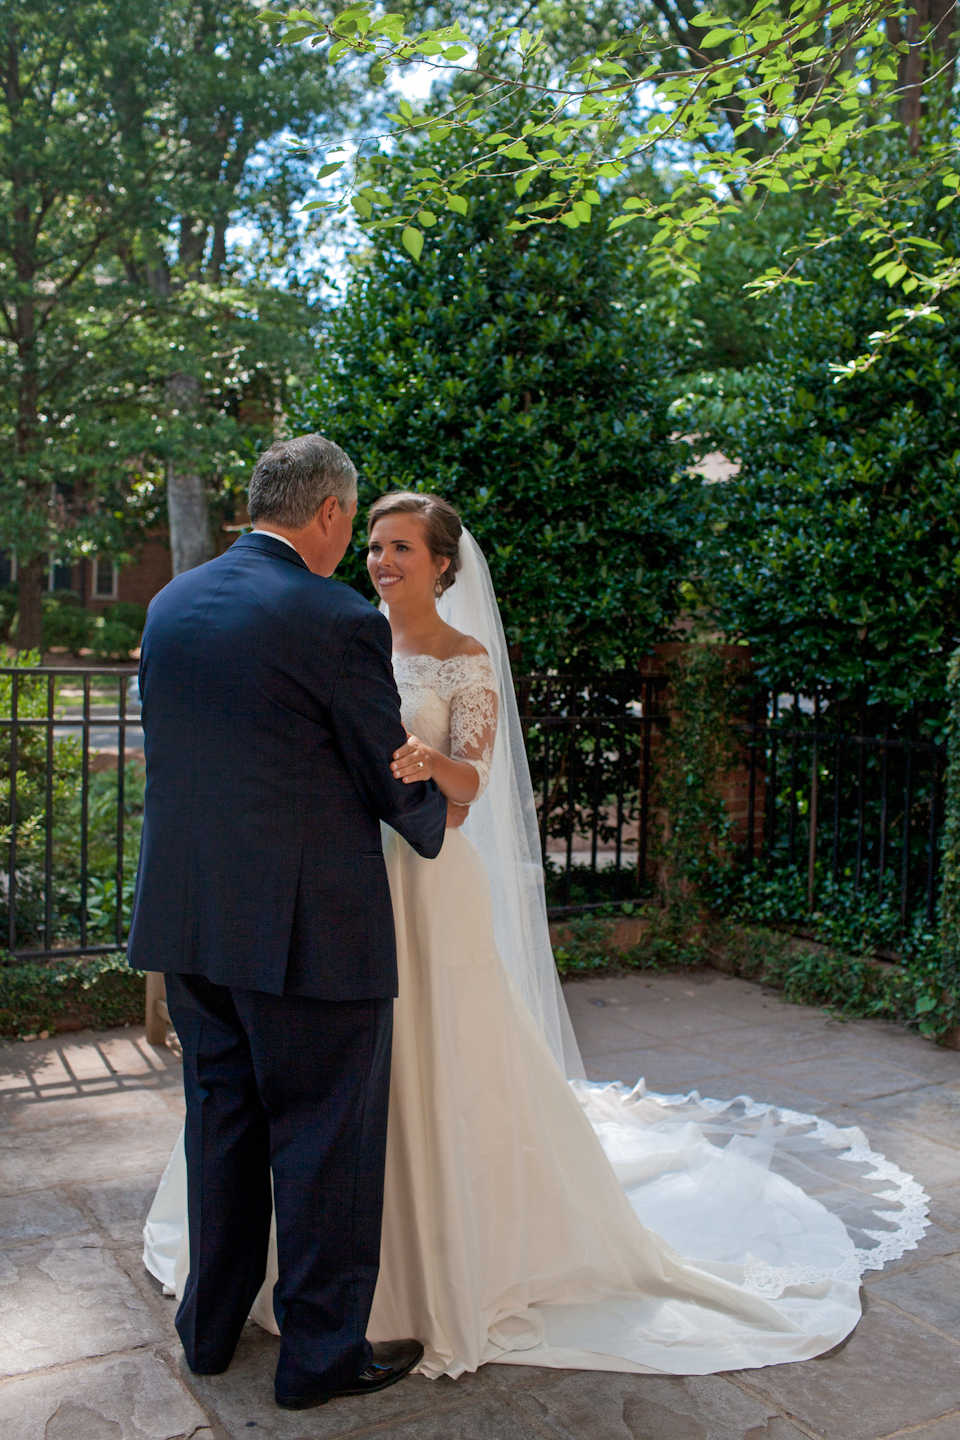 charlotteweddingphotographerivyplaceweddingwestminsterpresbyterian10.jpg